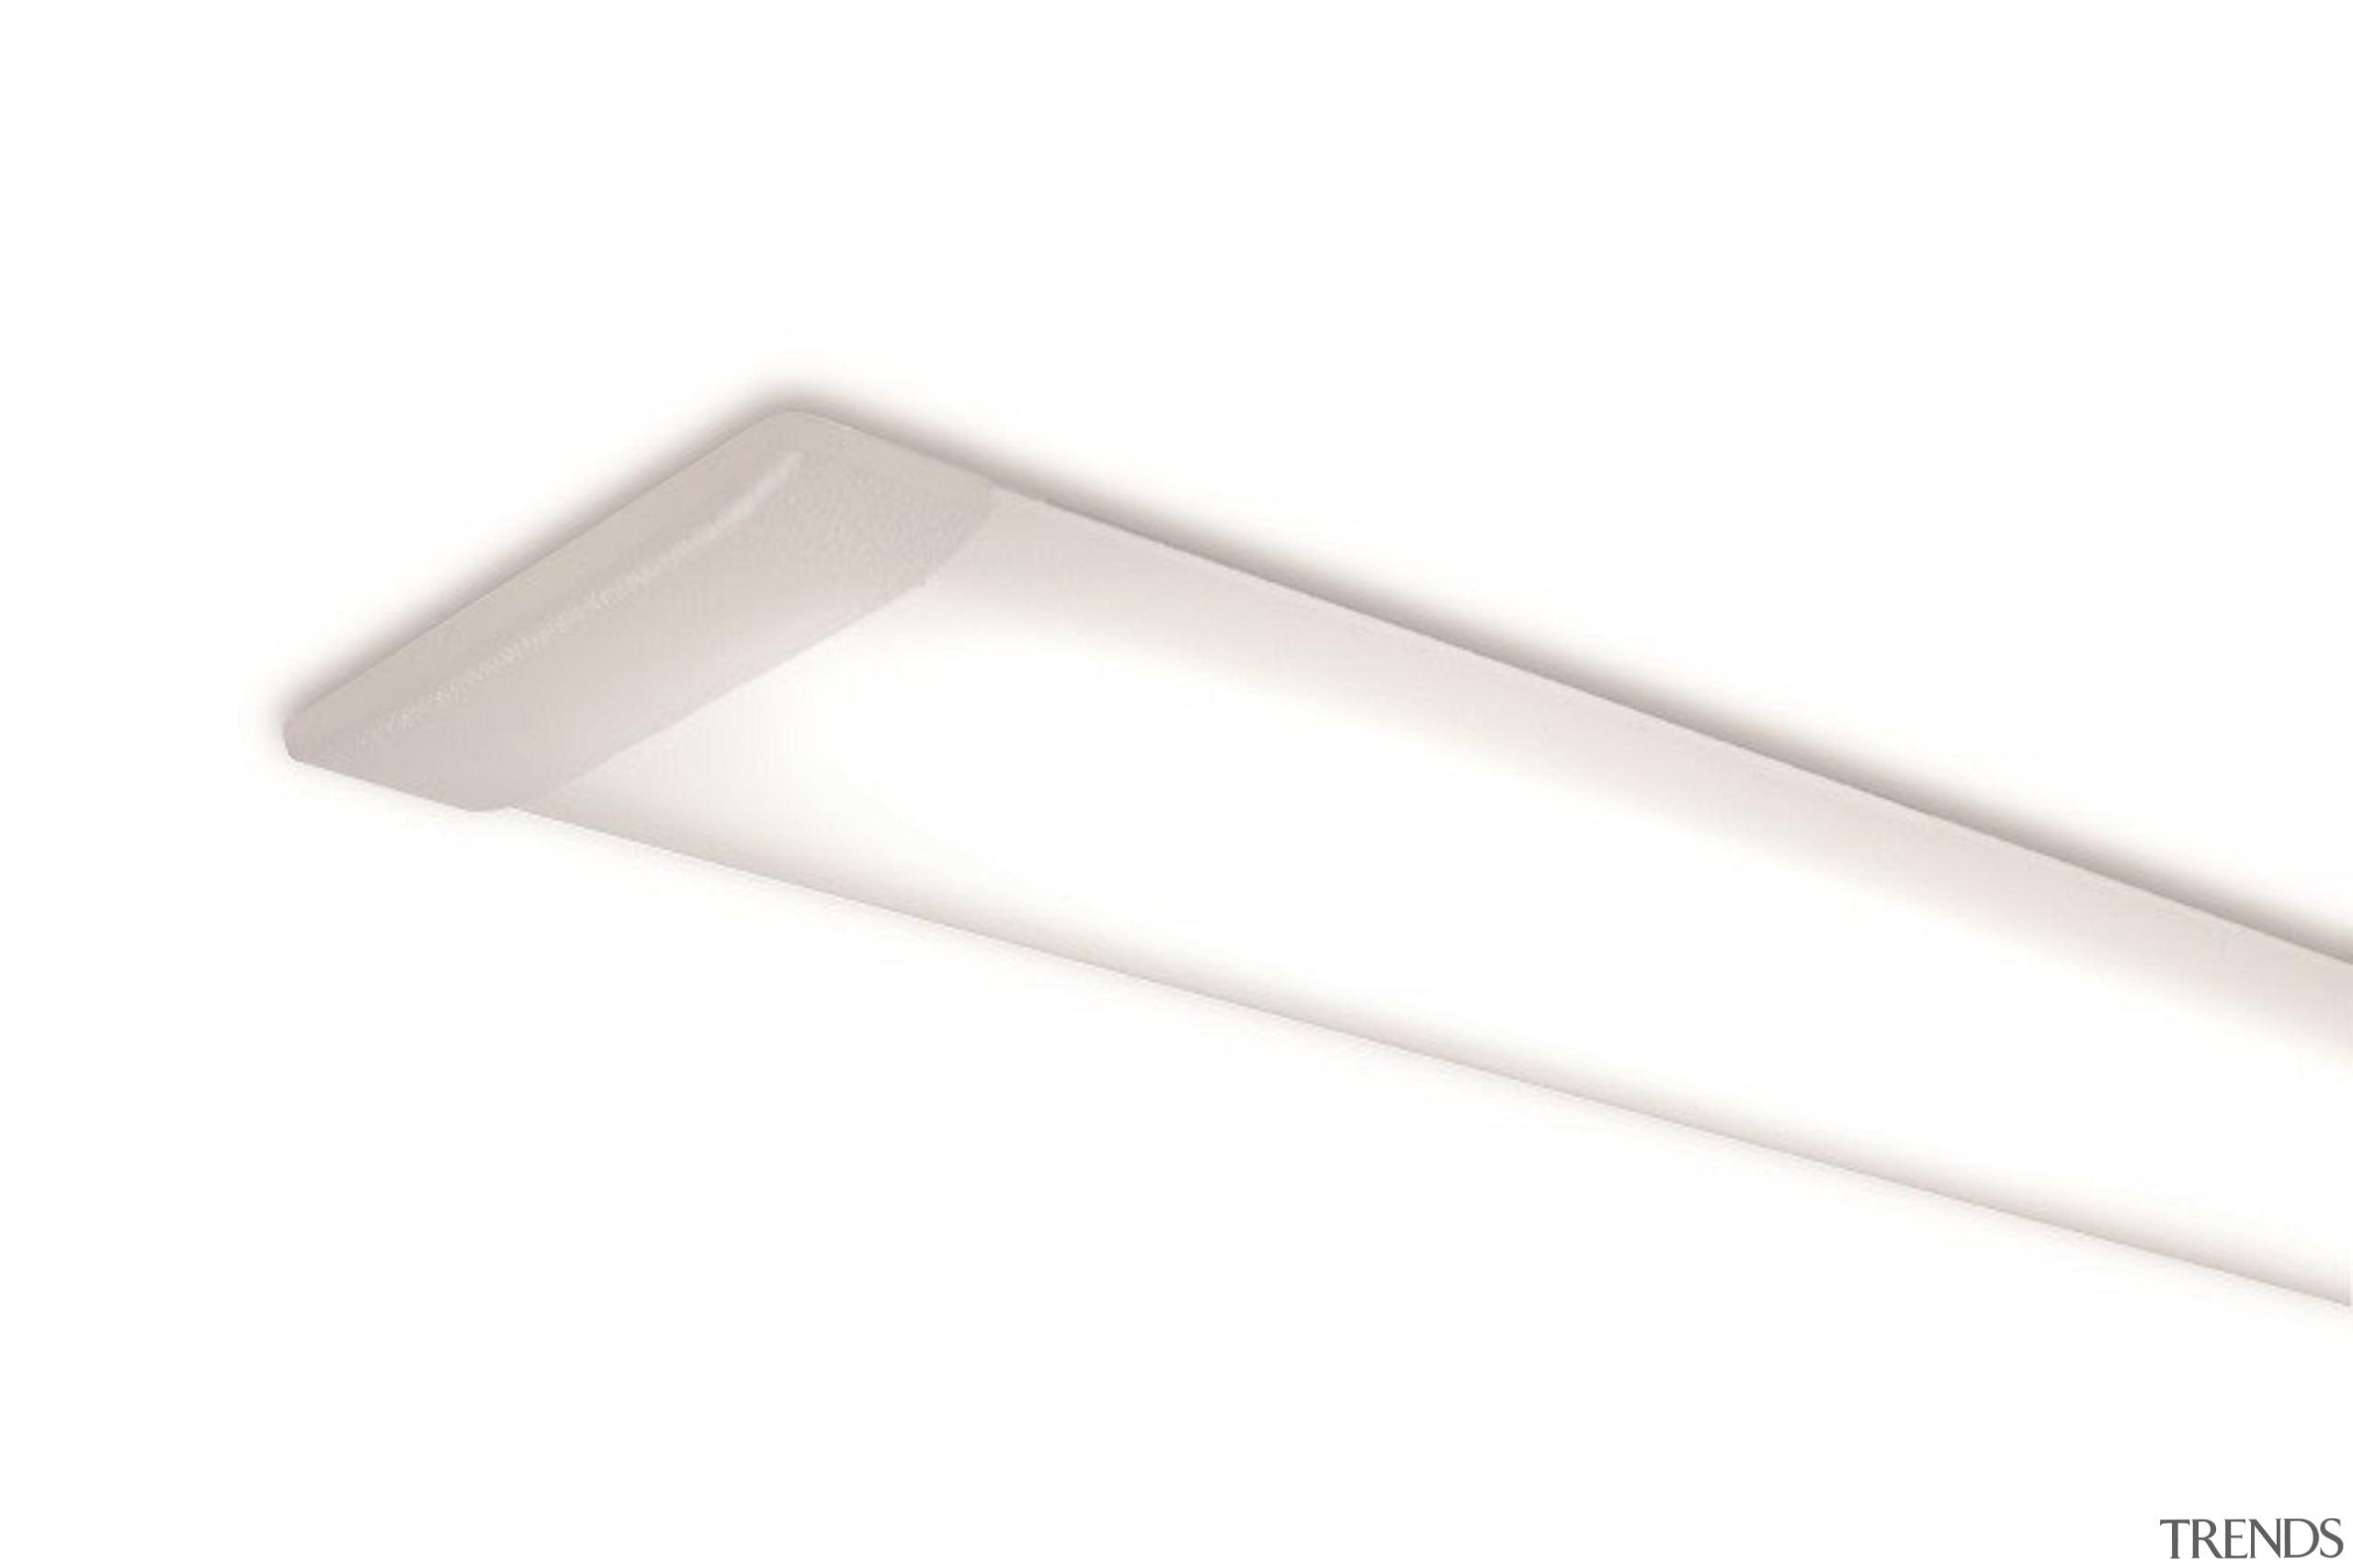 Designed in Italy to comply with Australian/New Zealand light, lighting, product design, white